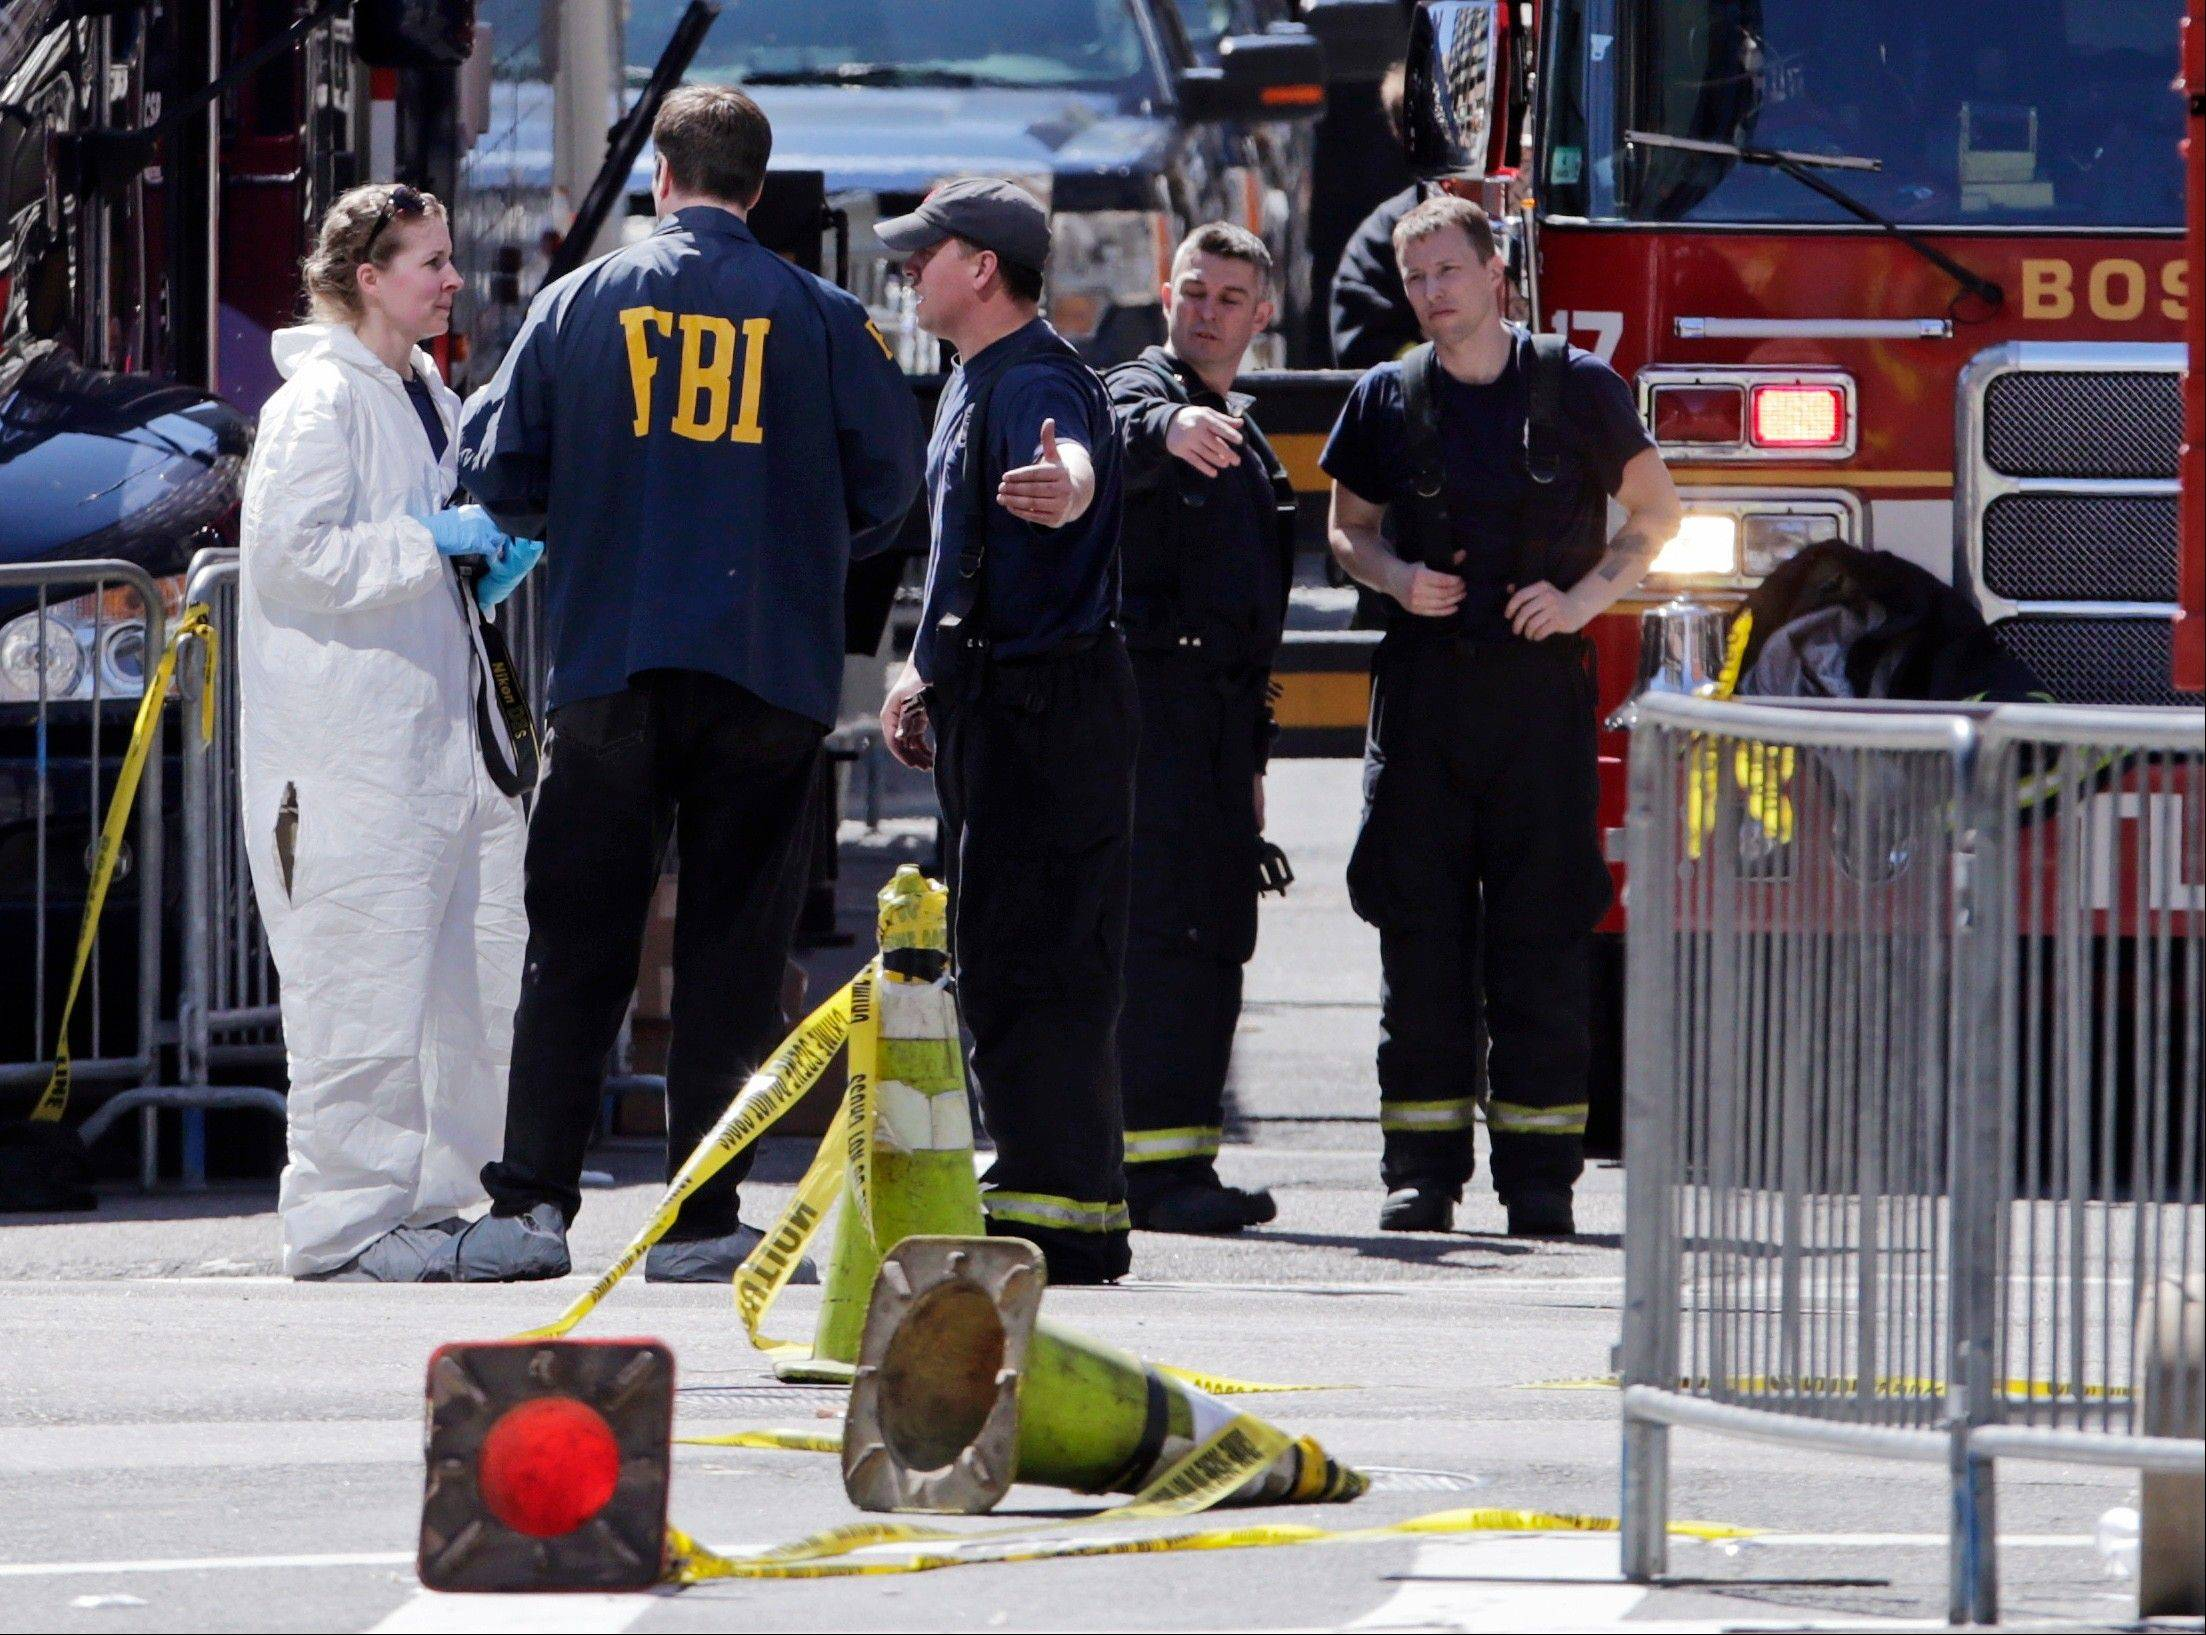 Boston firefighters, right, talk Tuesday with FBI agents and a crime scene photographer at the scene of Monday�s Boston Marathon explosions, which killed at least three and injured more than 140, in Boston. The bombs that blew up seconds apart near the finish line left the streets spattered with blood and glass, and gaping questions of who chose to attack at the Boston Marathon and why.